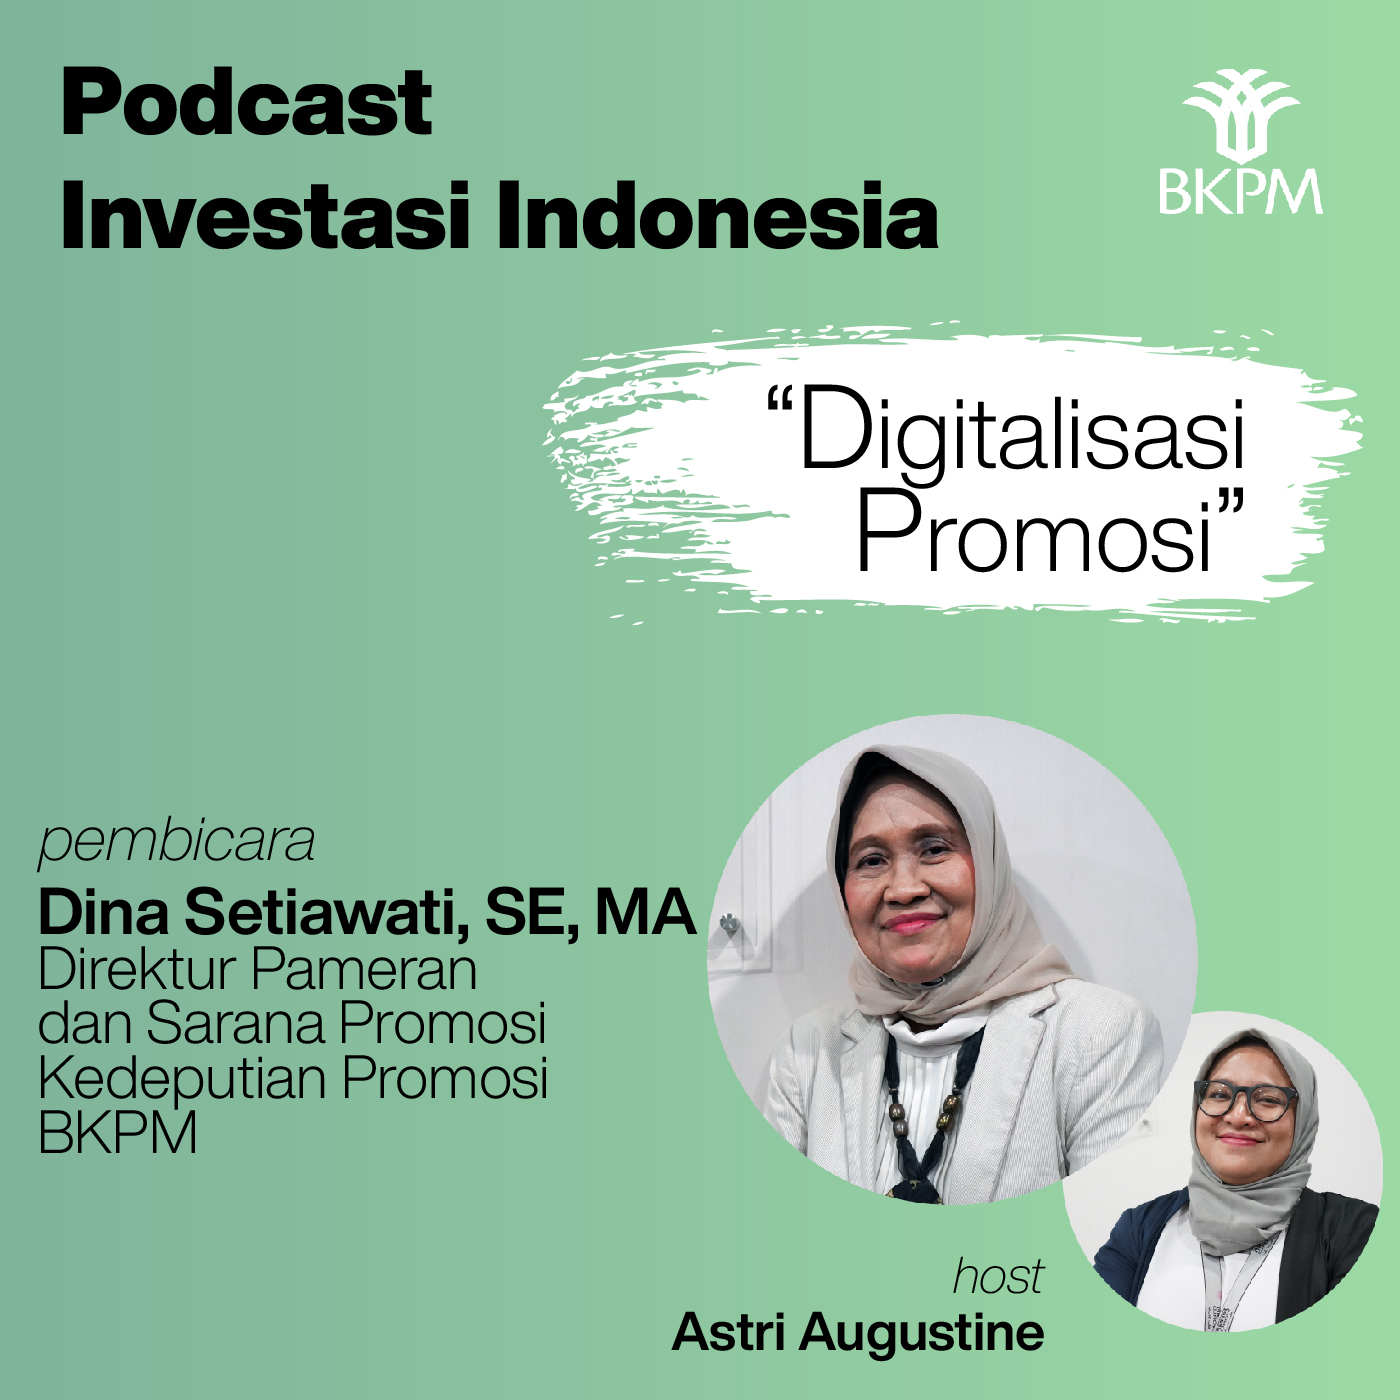 Episode 4: Digitalisasi Promosi